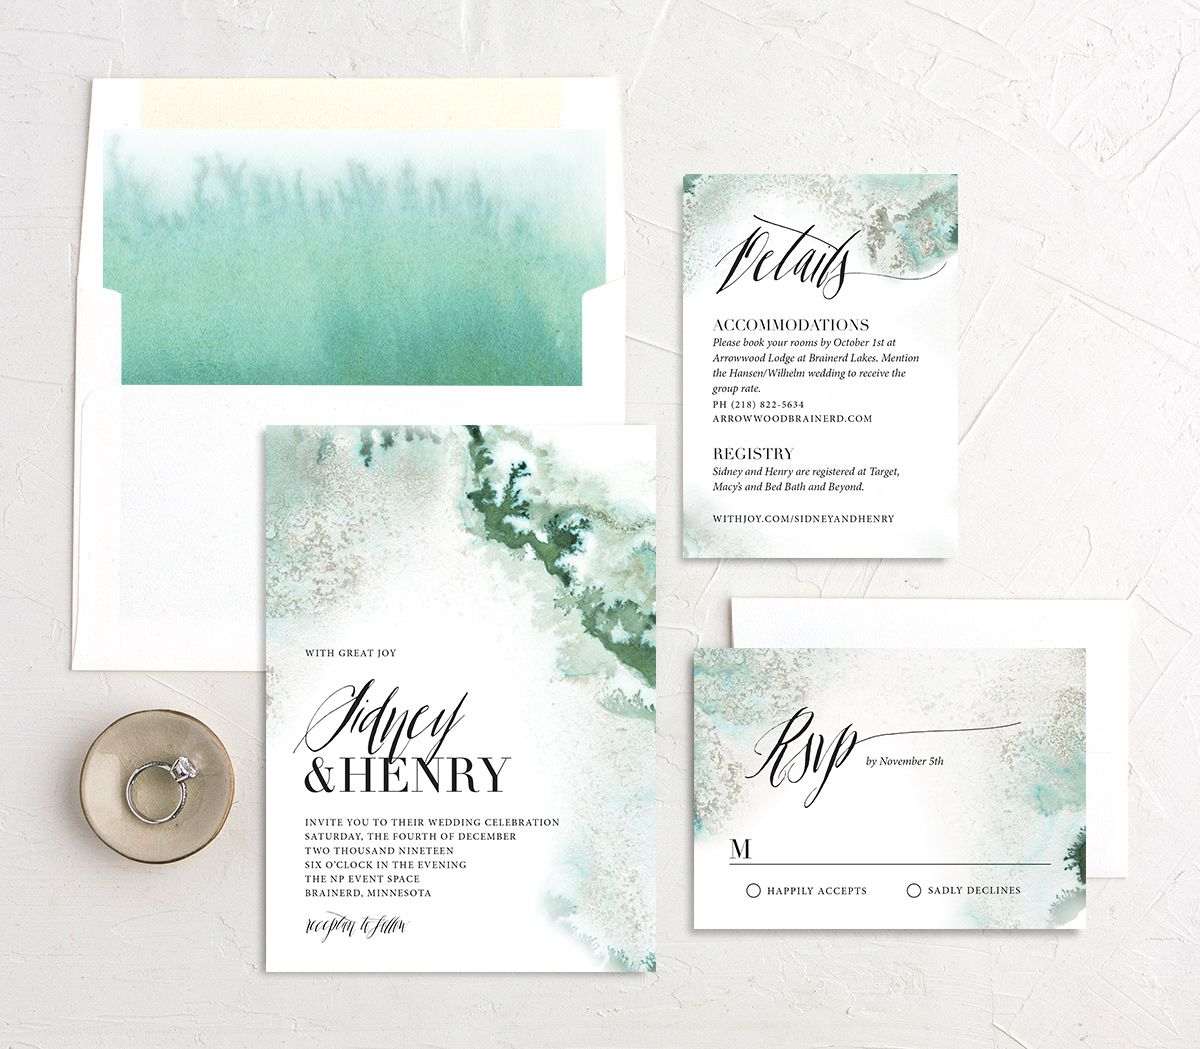 painted ethereal wedding invitation stationery suite in green